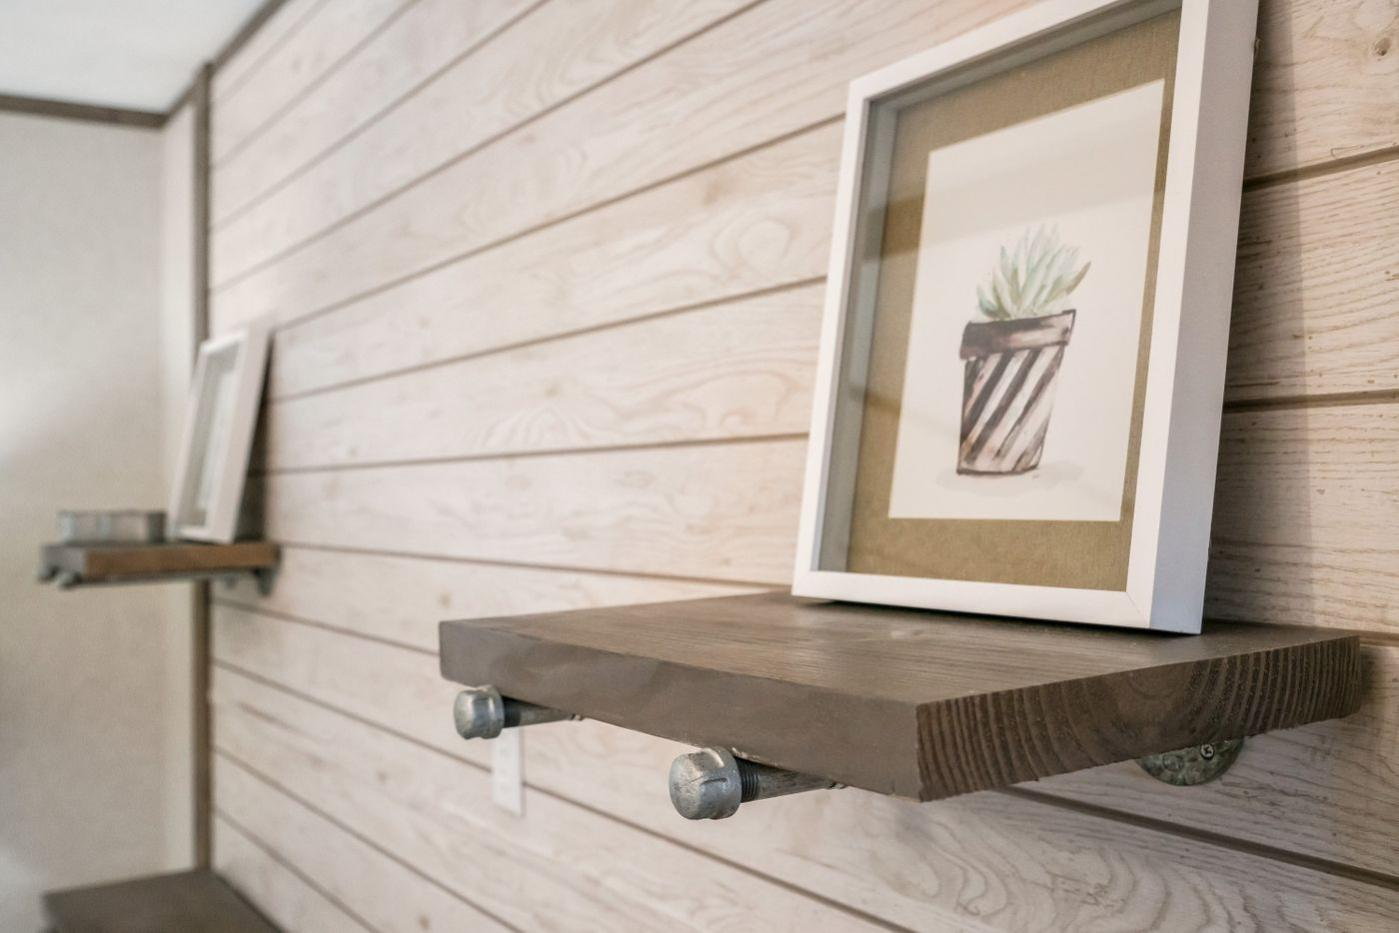 Shiplap walls in the Edge Manufactured Home from Worldwide Mobile Homes in Lumberton, Texas